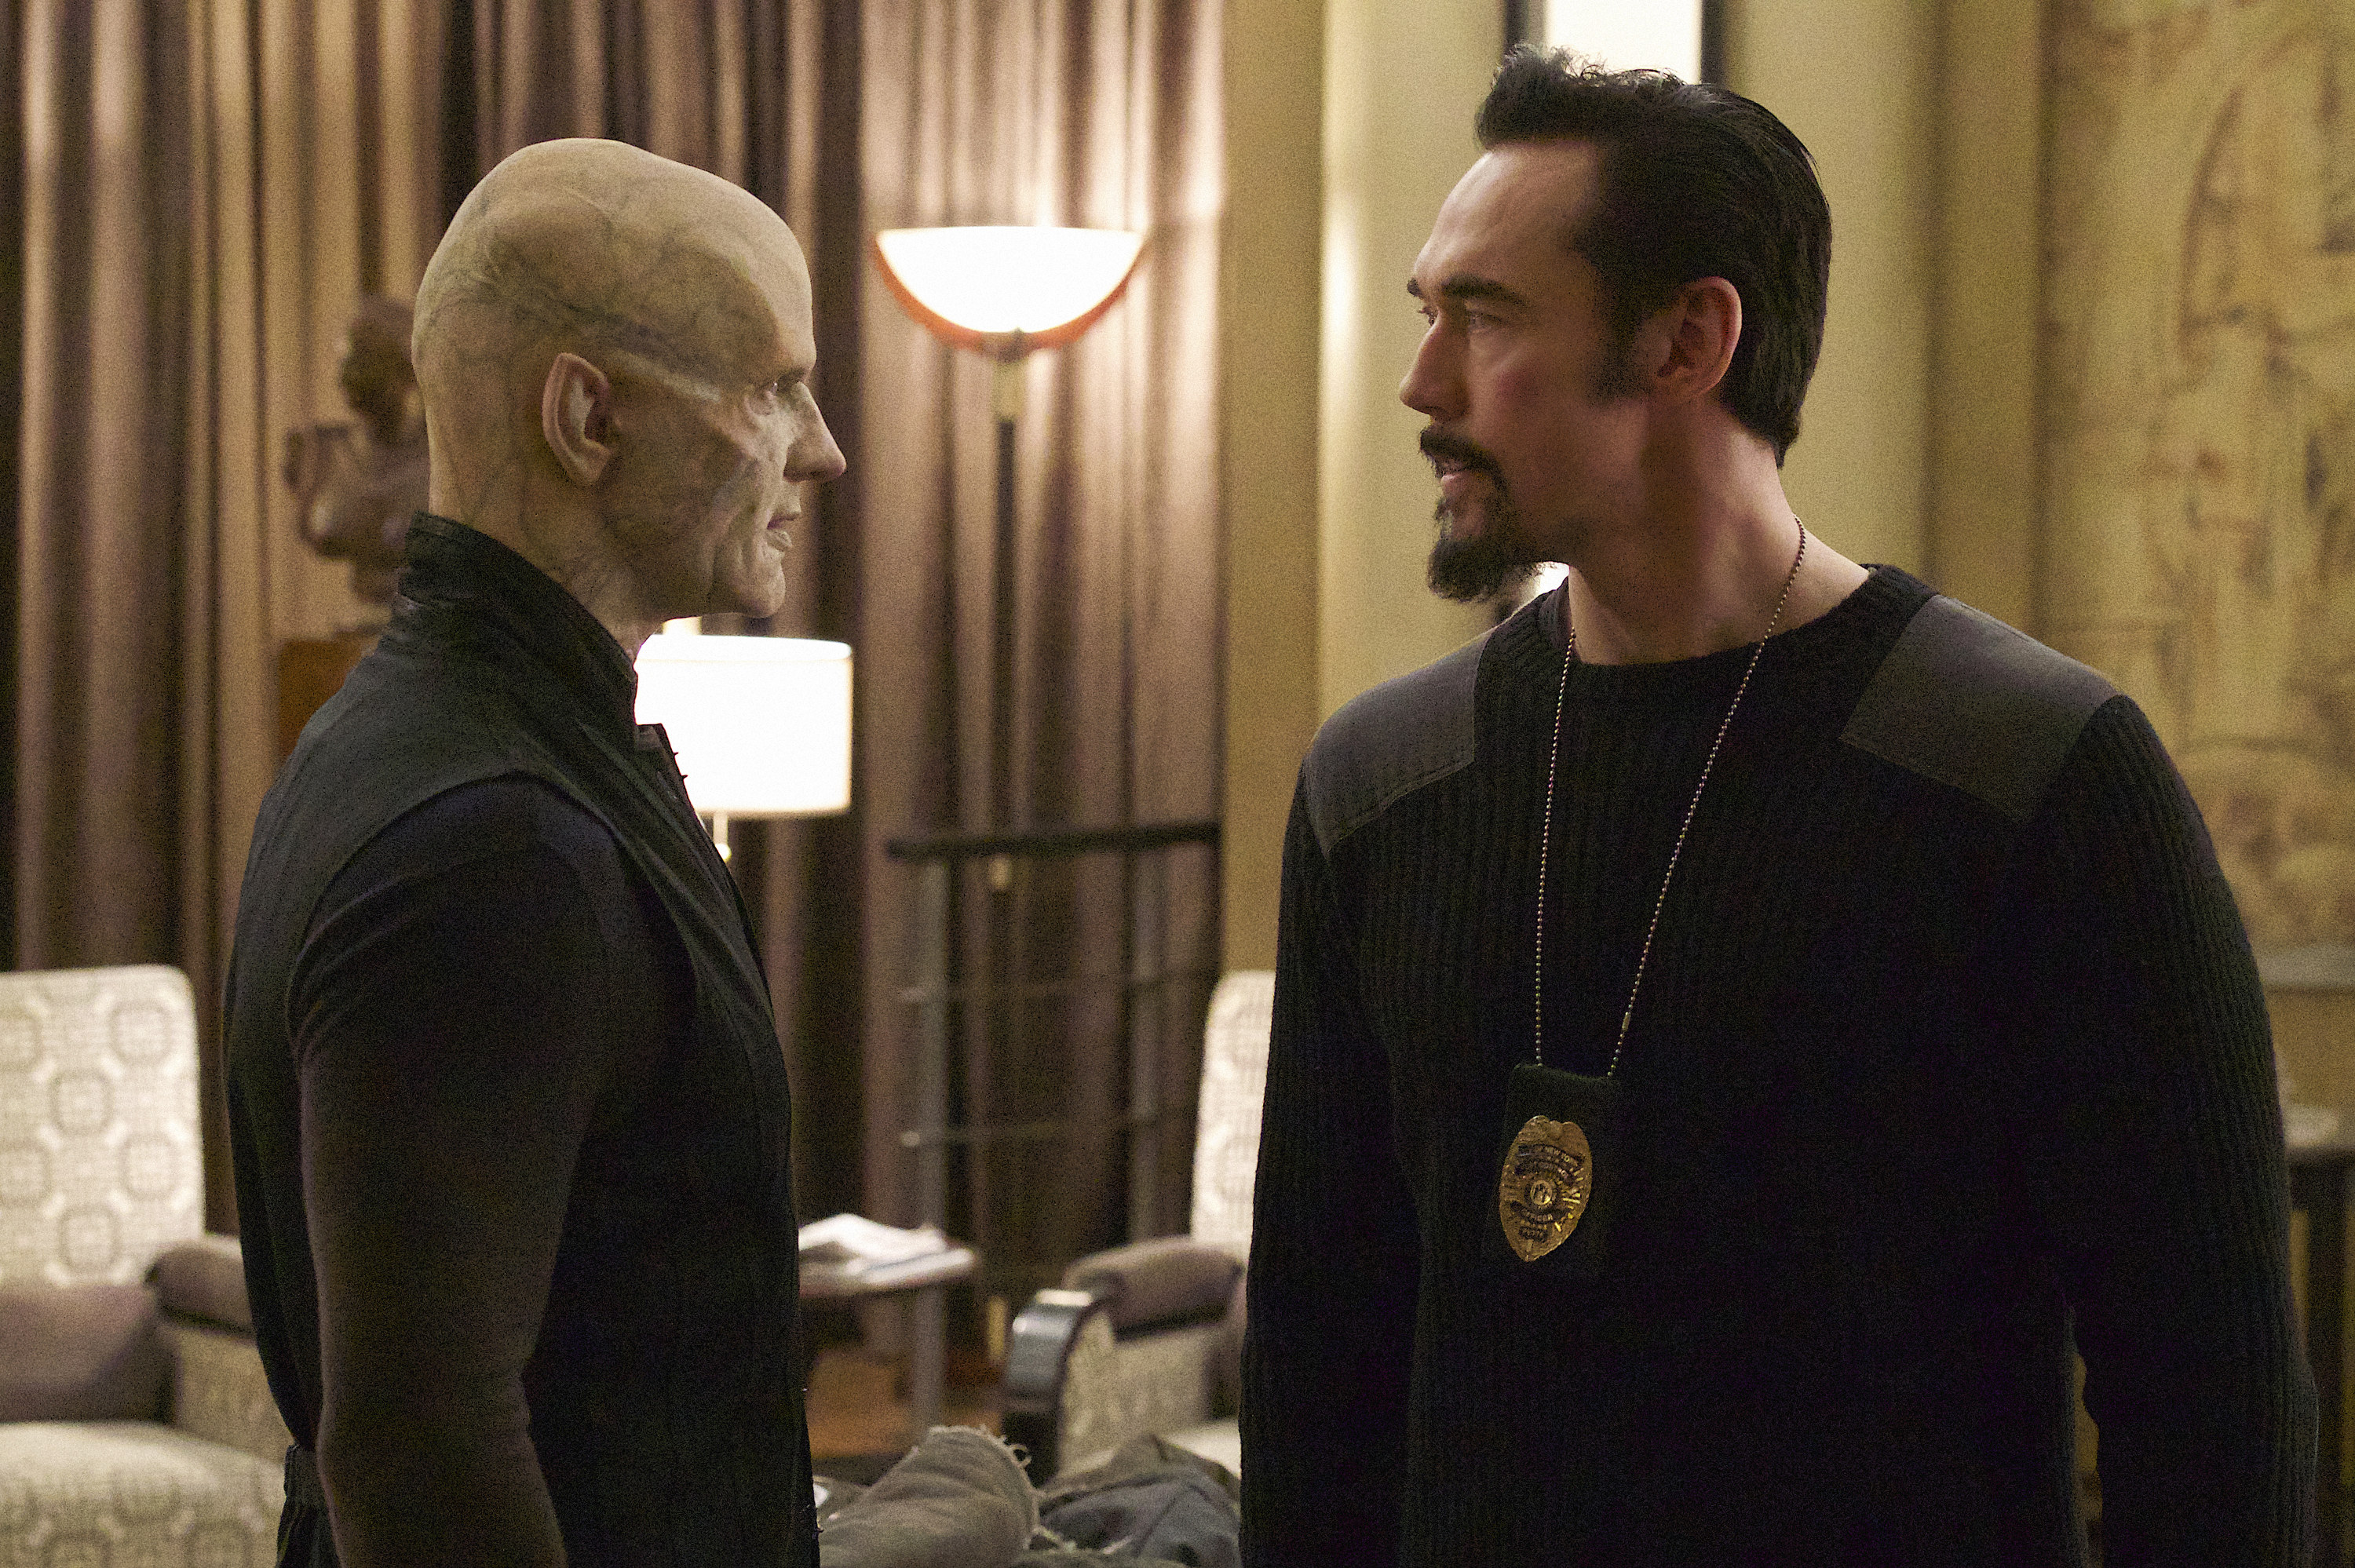 Episode 375: The Strain - S3E1 - New York Strong